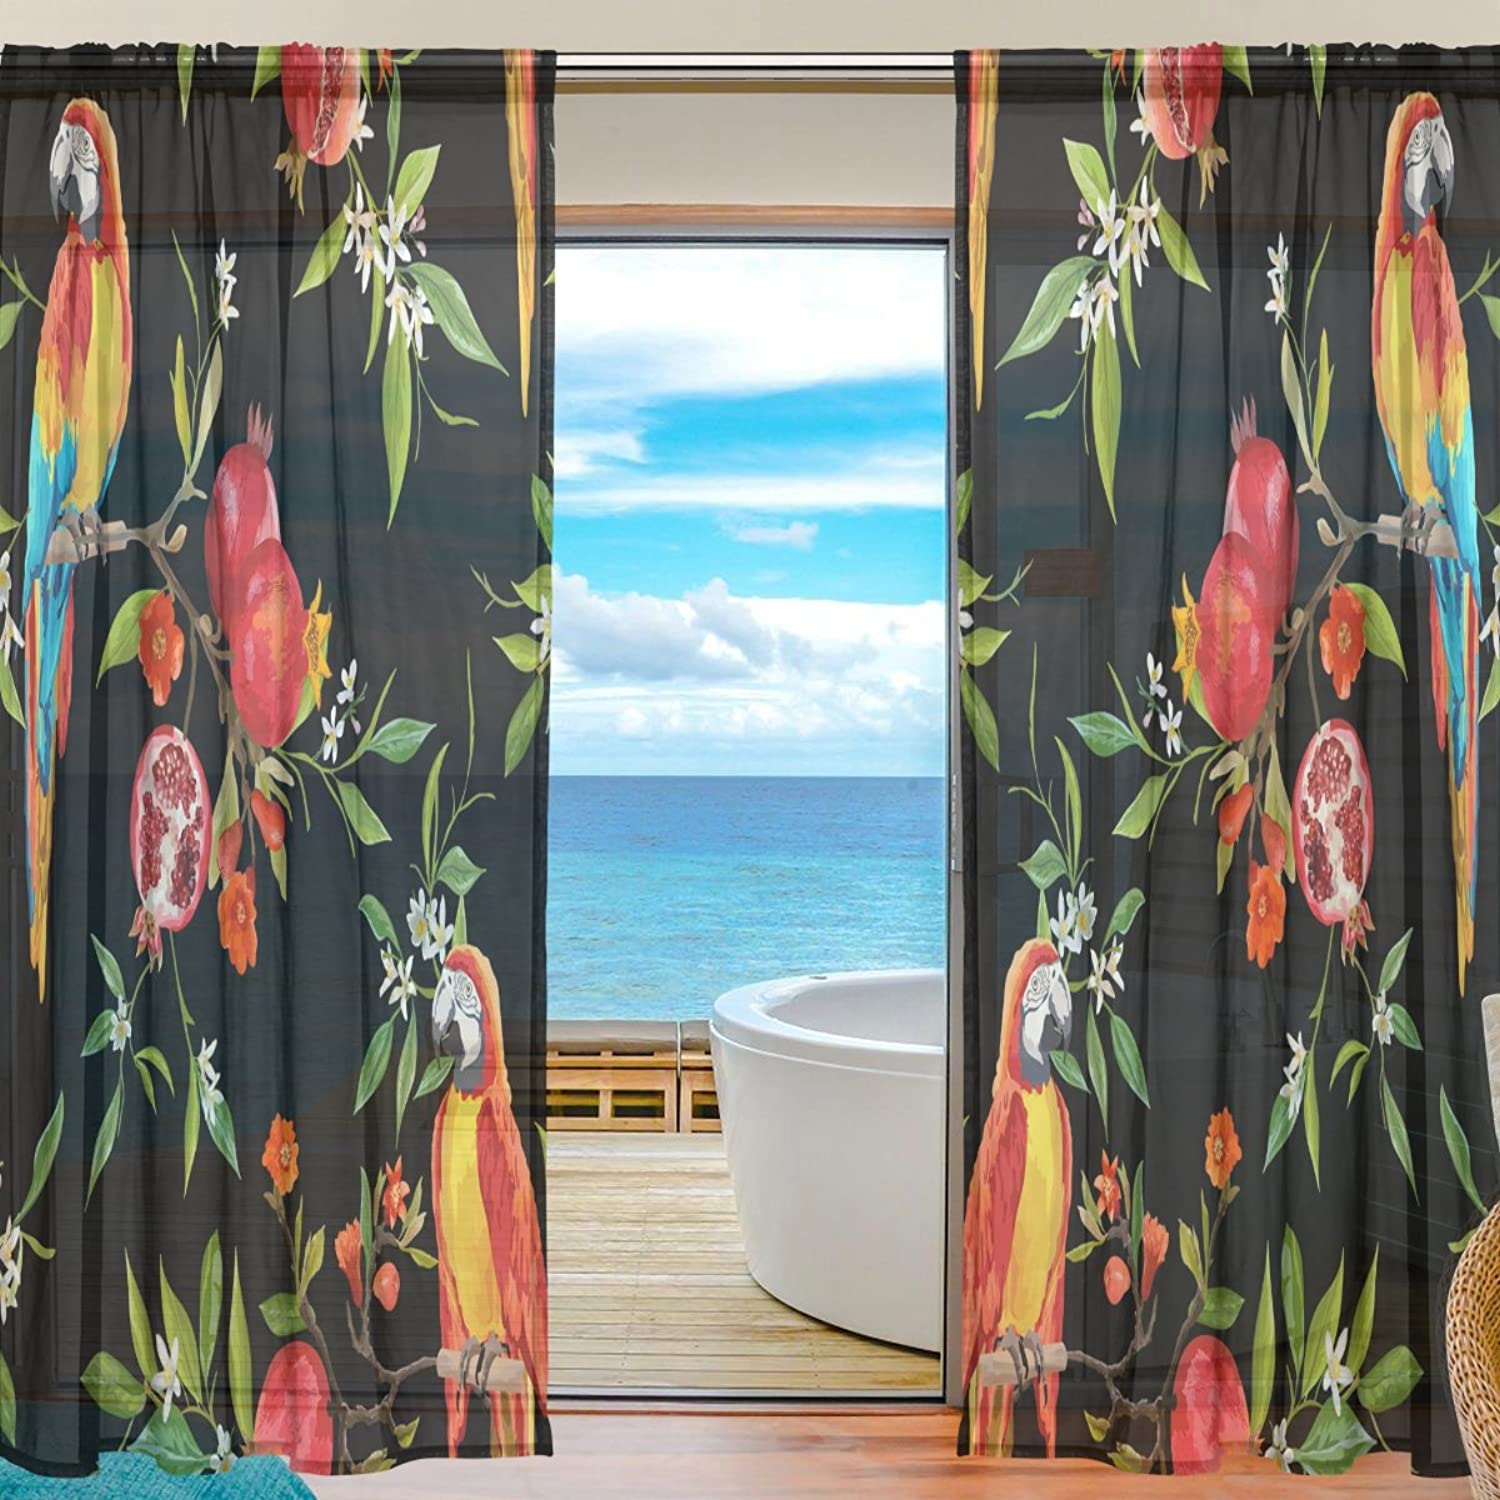 Vantaso Sheer Curtains 78 inch Long colorful Parred Floral Pomegranate Bloom for Kids Girls Bedroom Living Room Window Decorative 2 Panels